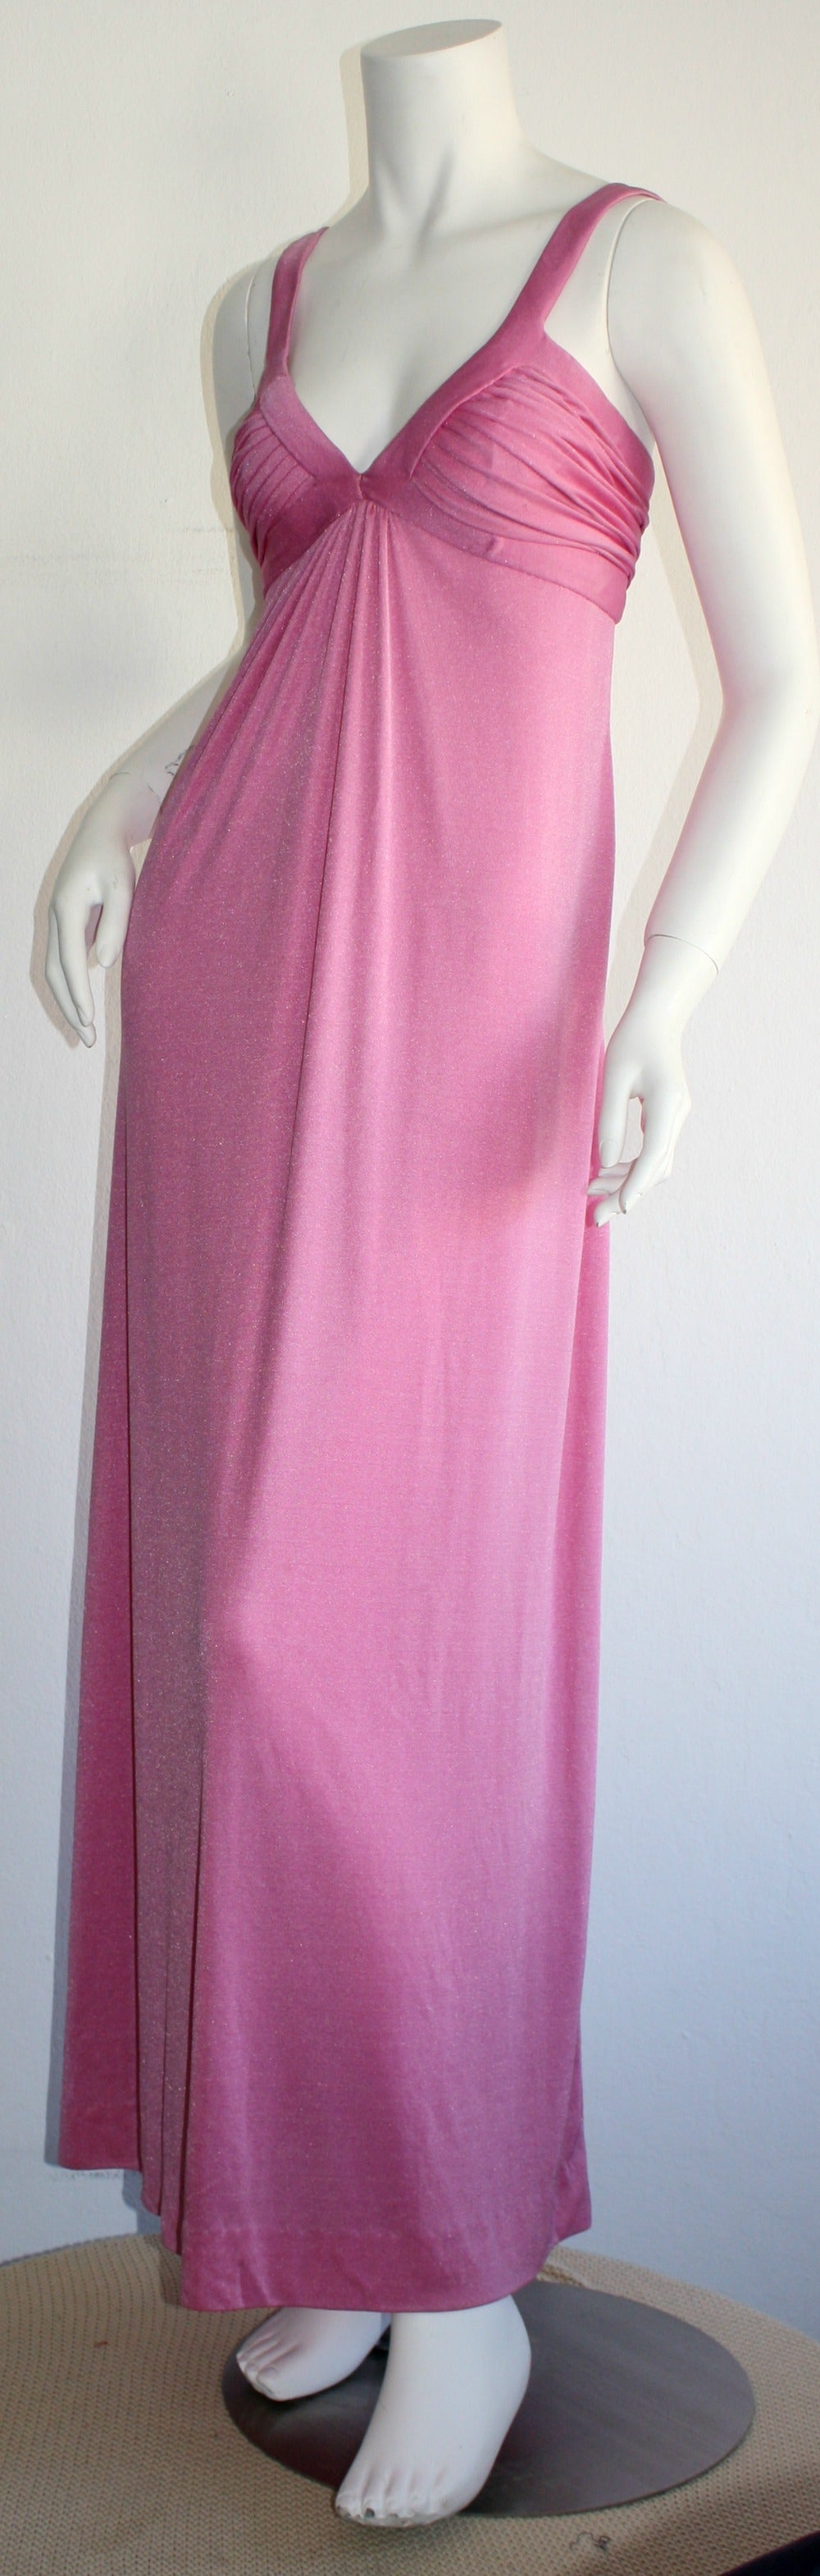 Stunning vintage 1970s Loris Azzaro pink silk jersey gown! Beautiful bodice, with a draped, Grecian/Empire feel to the body. Zipper works great, just could not fit the dress form. In great condition. Made in France. Approximately Size